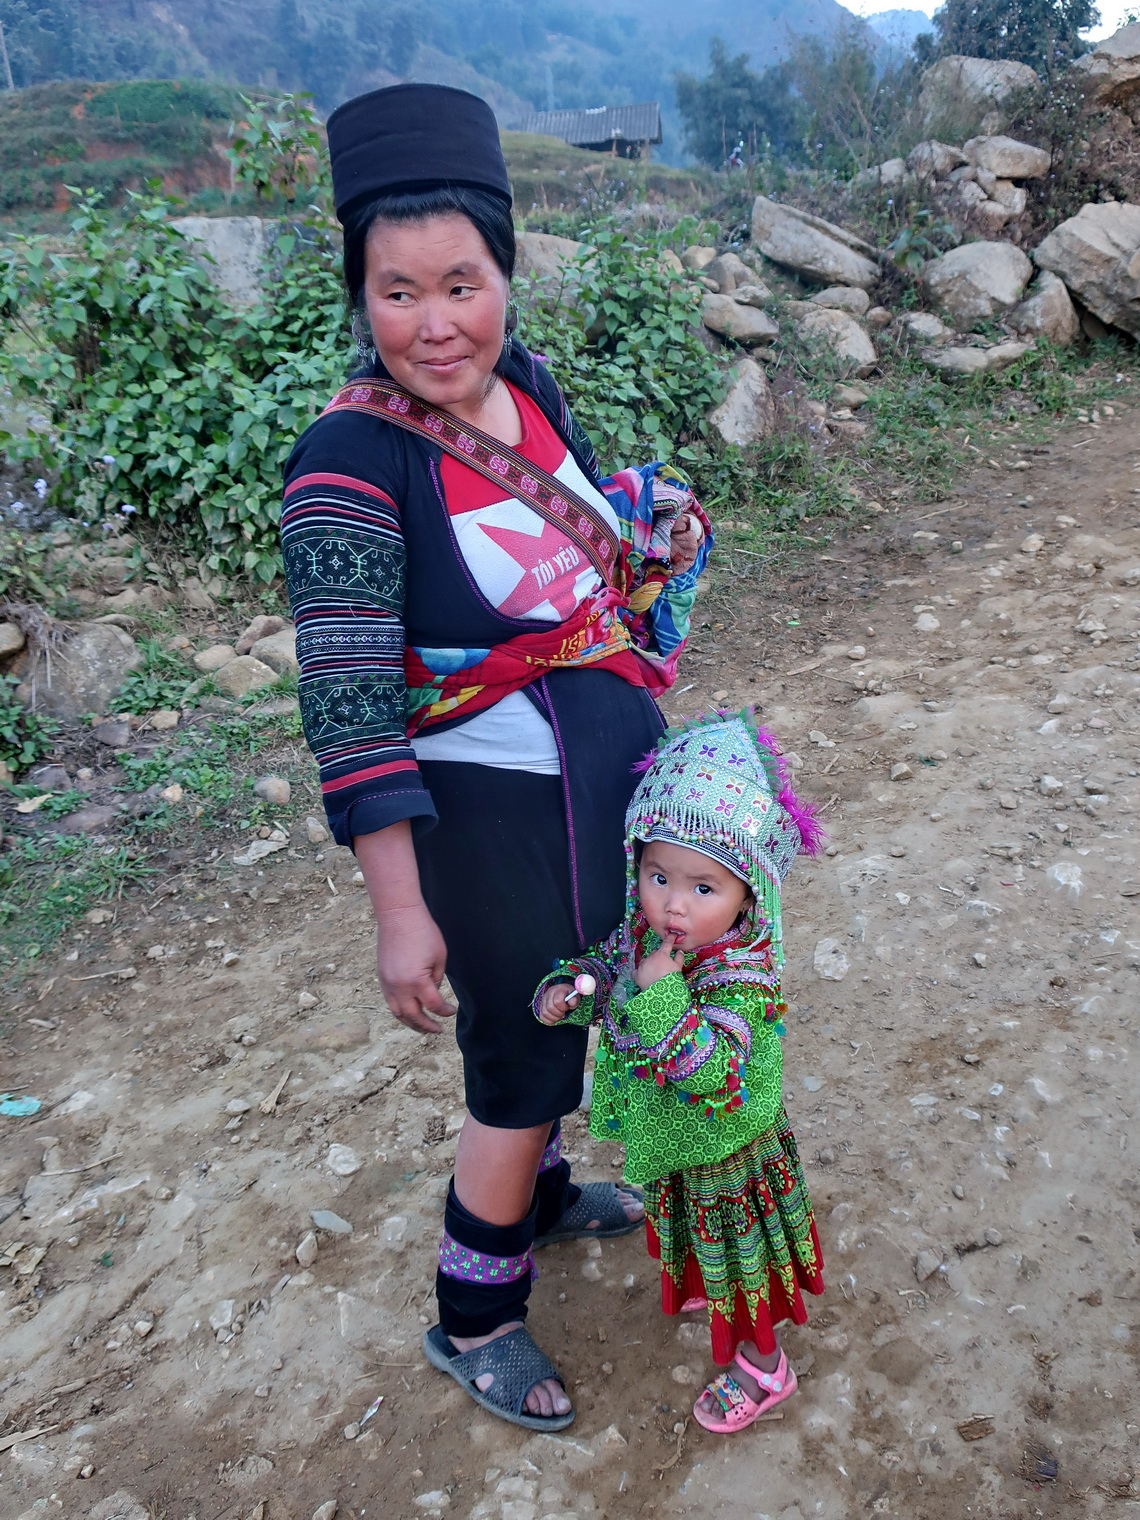 Local woman with little girl